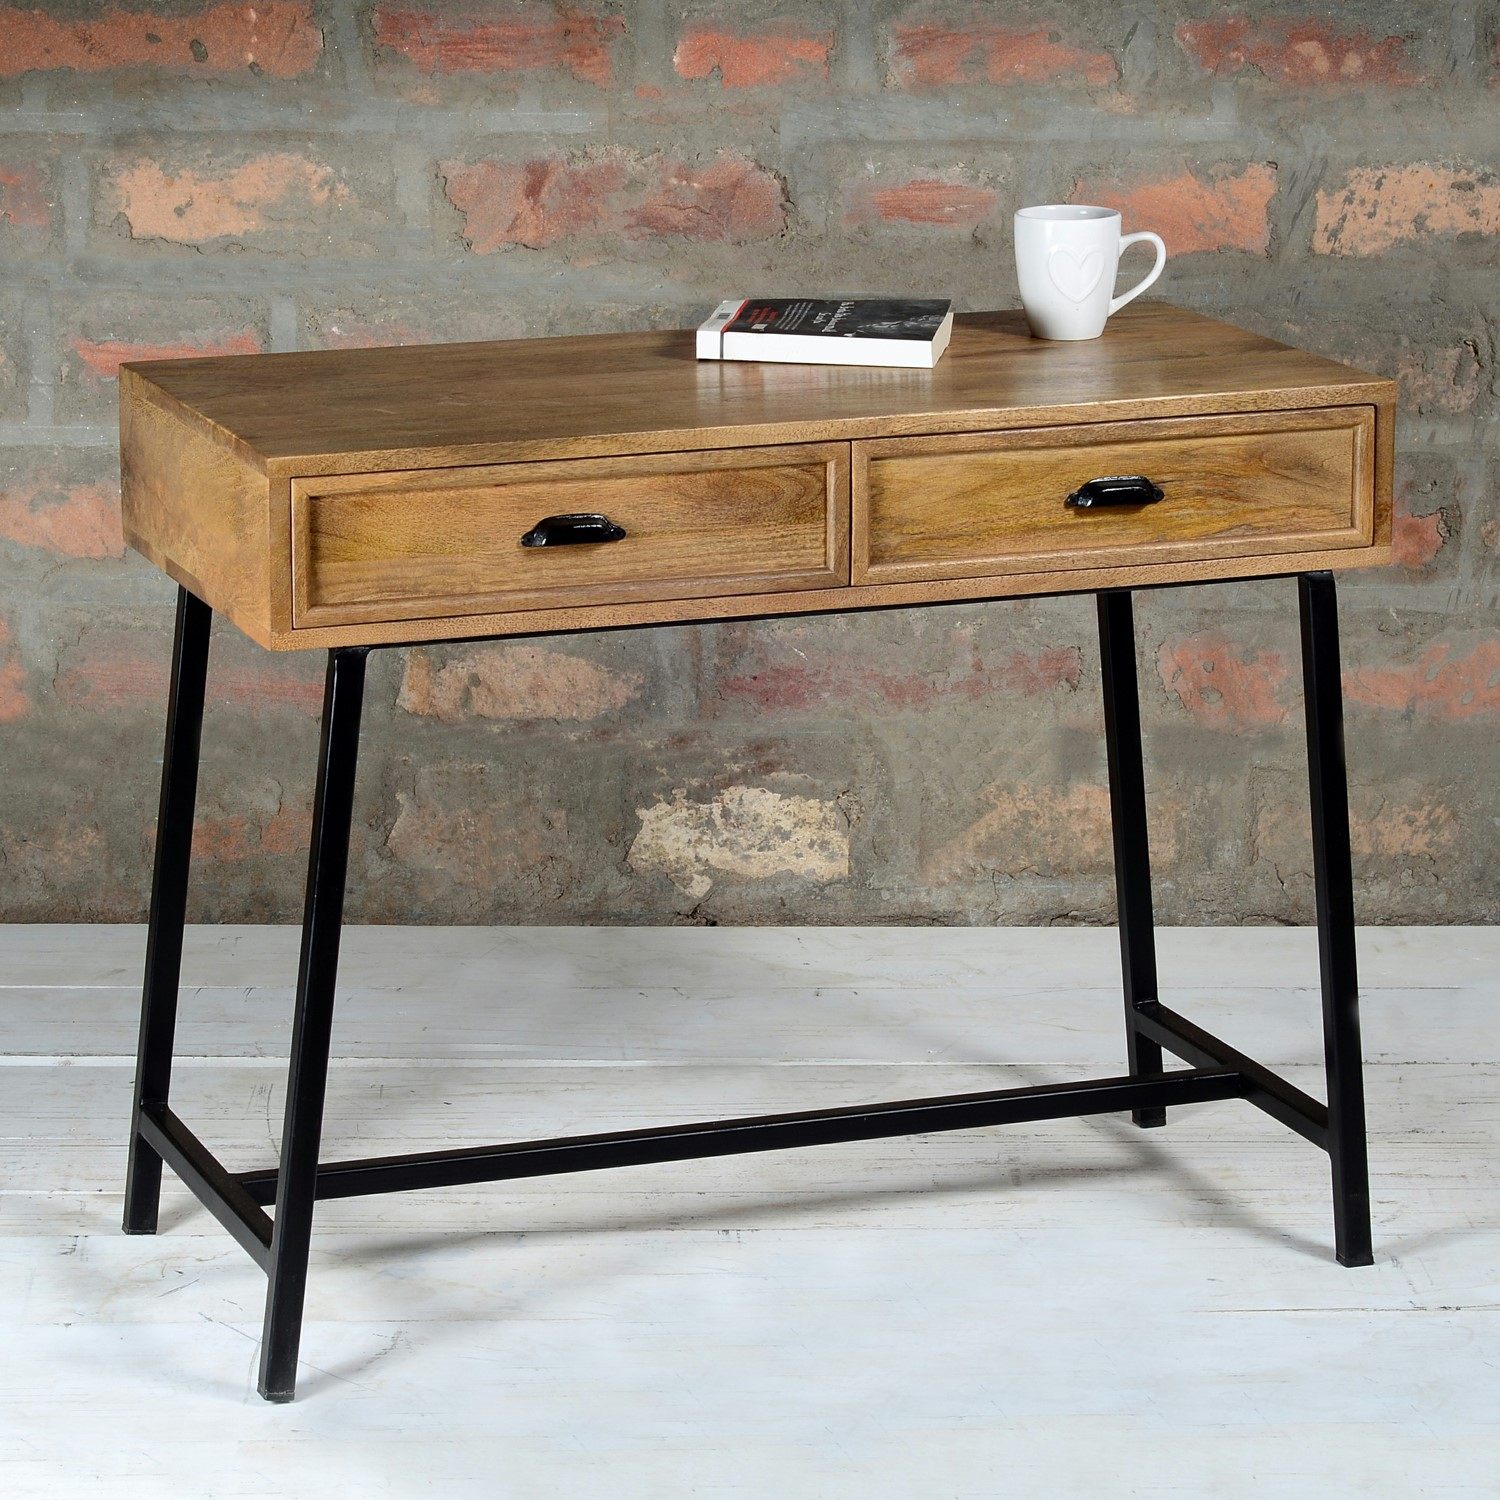 Grade A1 Suri Industrial Modern Narrow Console Table With Drawers In Mango Wood Metal Detail Furniture123